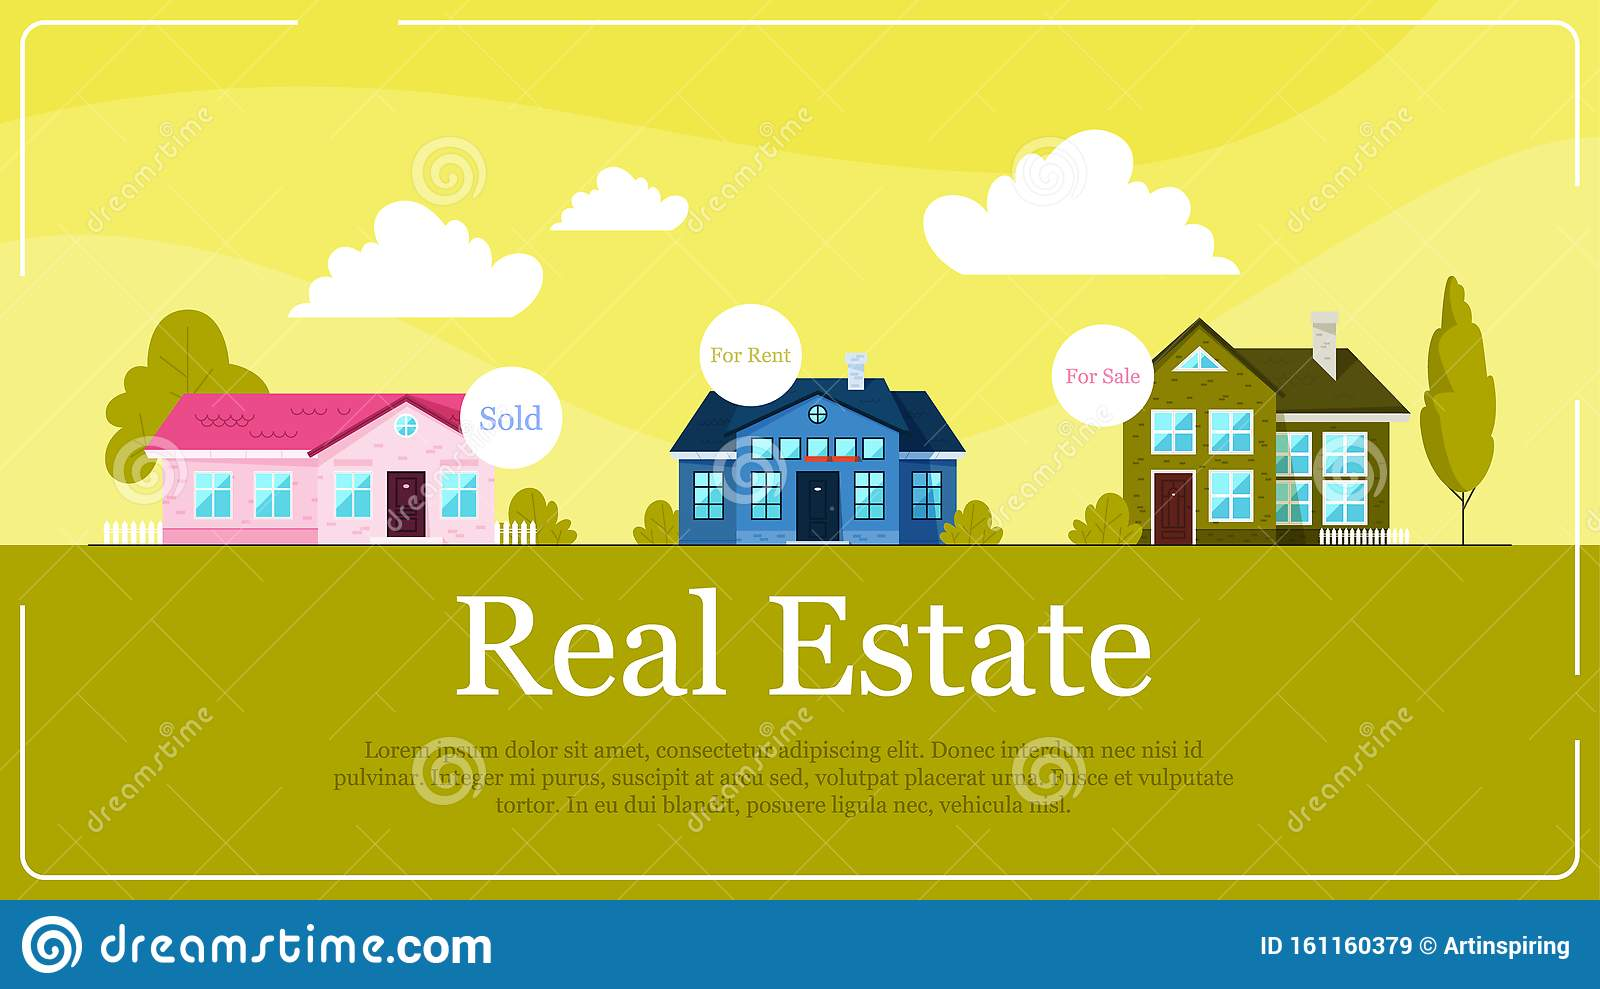 Real Estate Banner Concept Idea Of House For Sale And Rent Stock Vector Illustration Of Model Architect 161160379